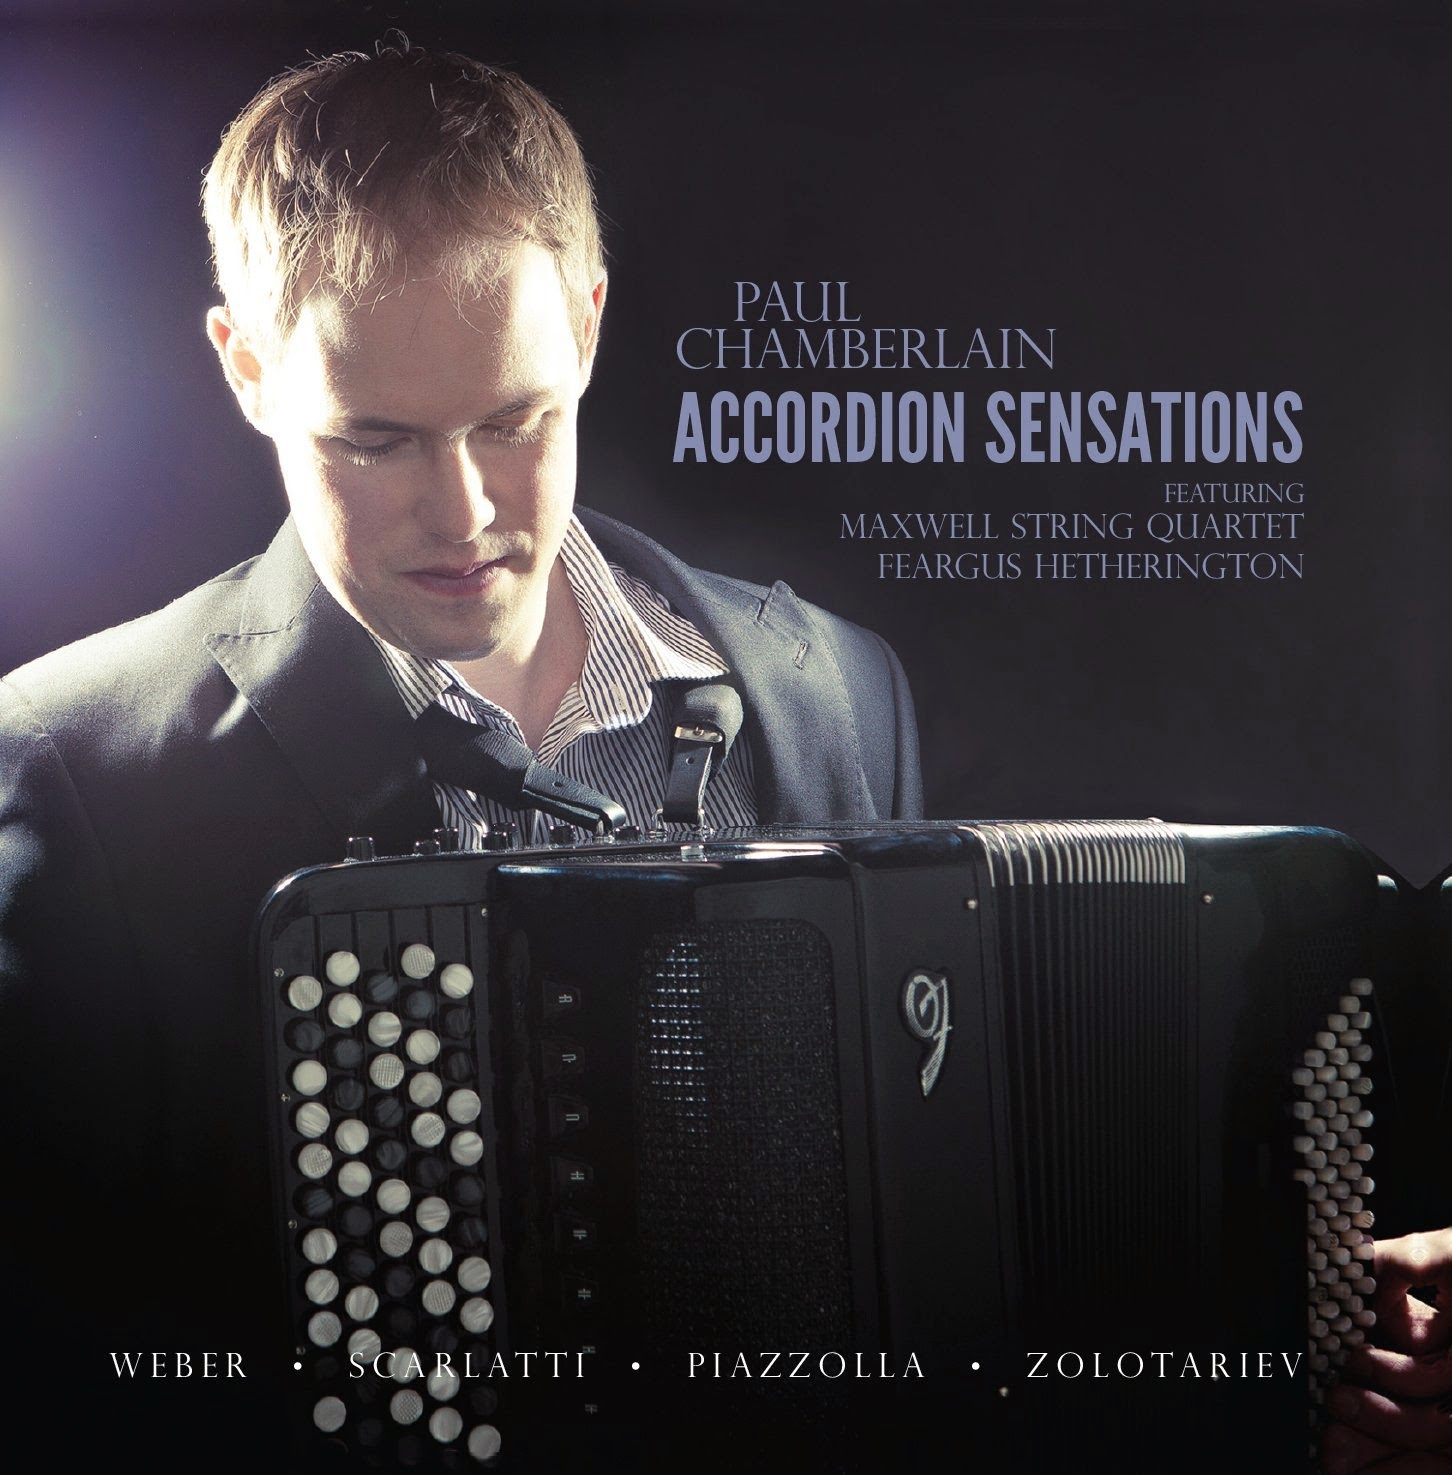 Paul Chamberlain - Accordion Sensations